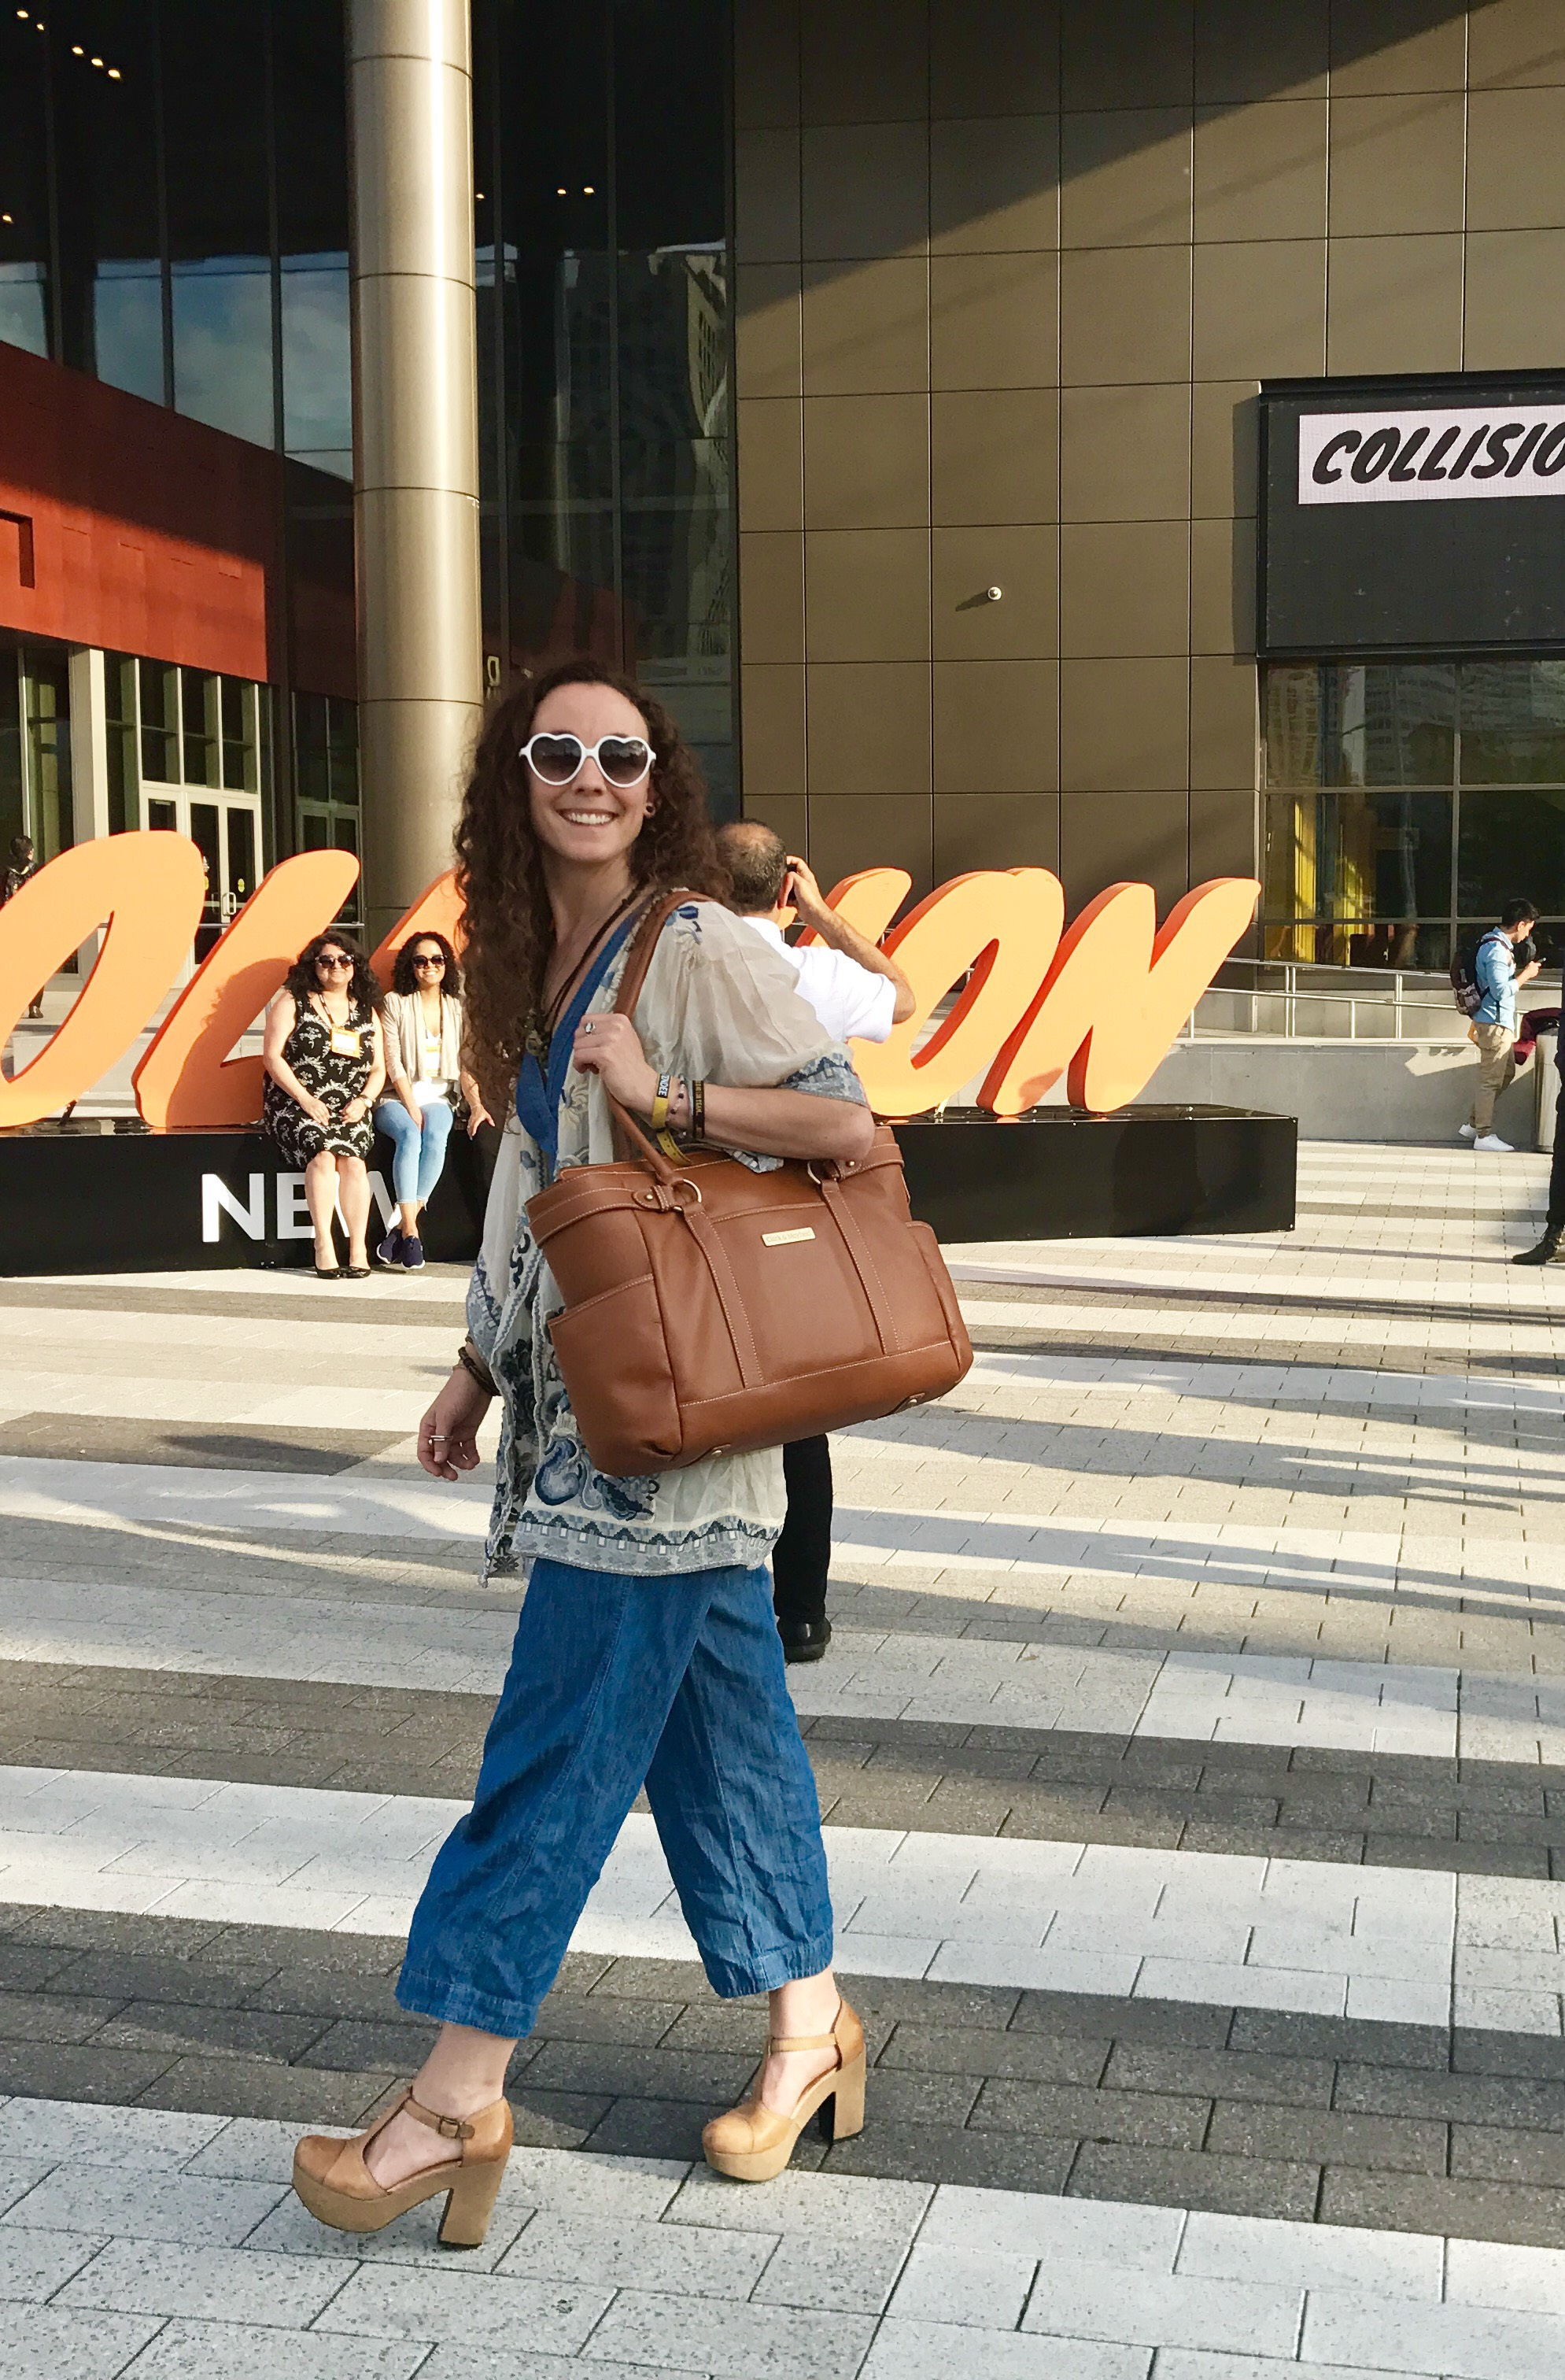 Collision Conference and Clark & Mayfield handbag.